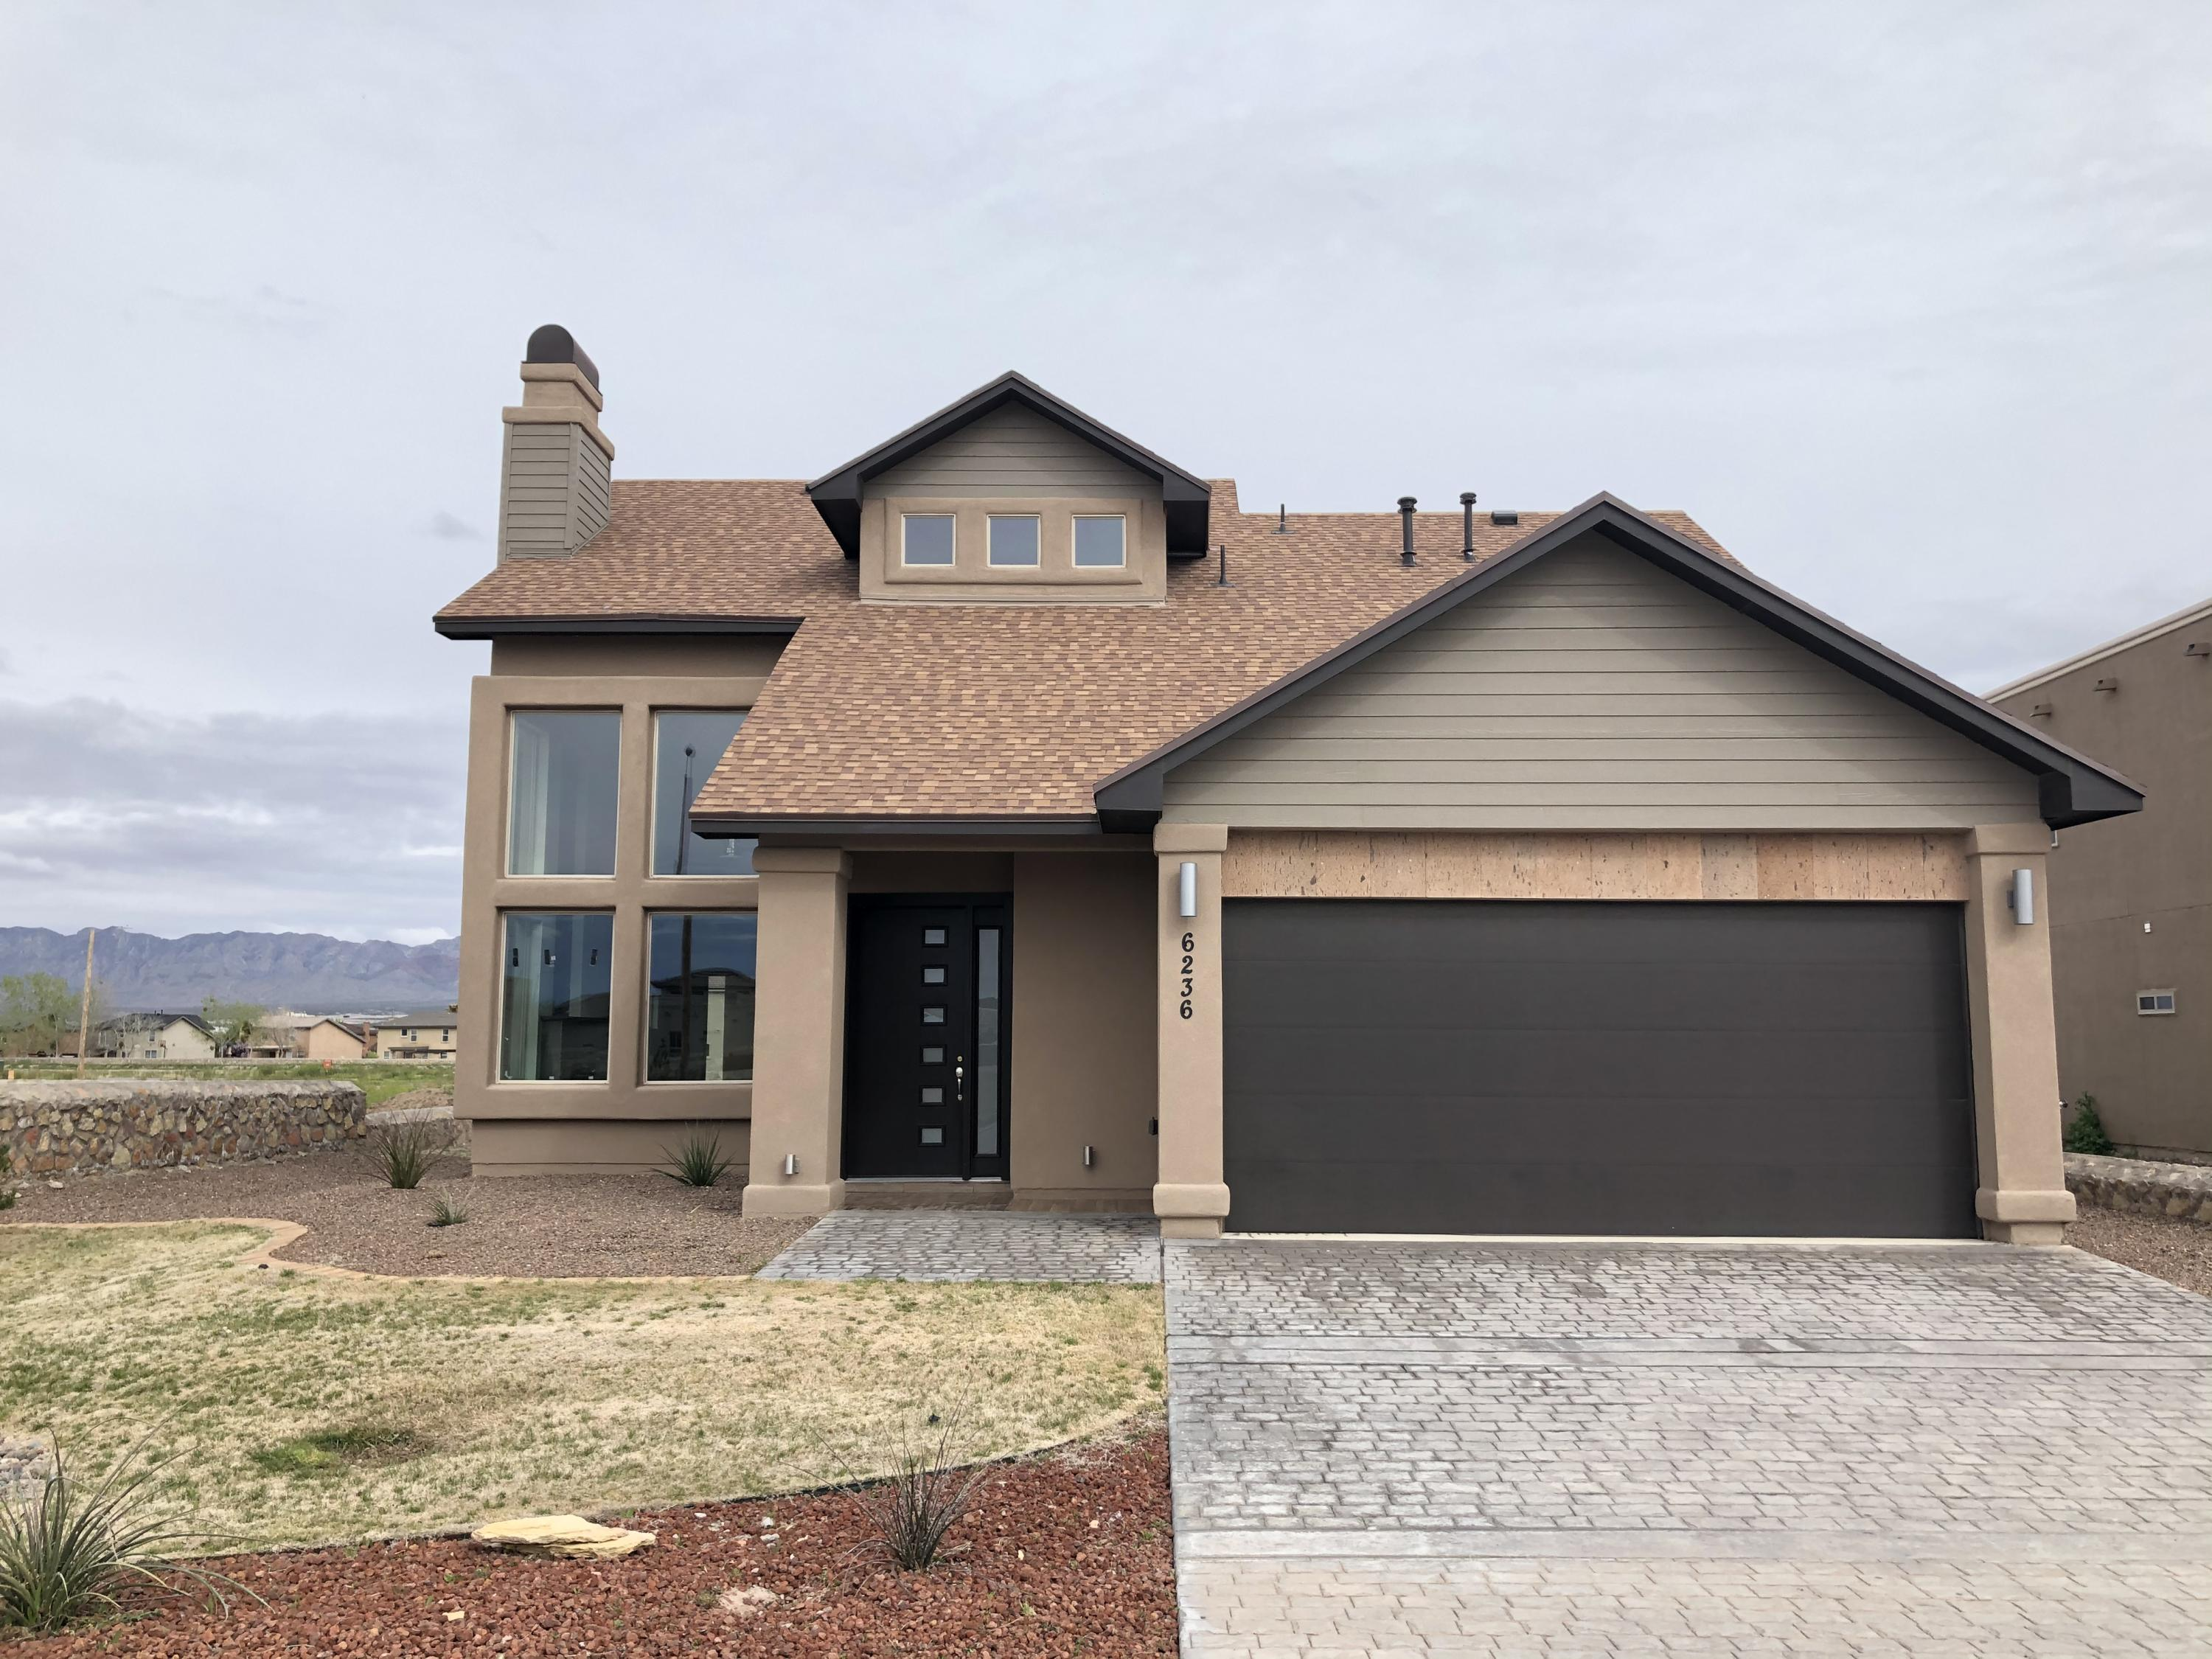 This beautiful never used modern 2017 home, is located in the heart of Artcraft Estates. Luxurious, wide open living space, sophisticated fireplace, large windows to allow natural light, ceramic tile, carpet, high ceilings and an original floor plan. This house has granite counter tops throughout the home, stainless steal appliances, wood cabinets, spray foam insulation, trendy colors and a great vibe. It is four bed, two and a half bath, with the master downstairs and a beautiful tile patio with a great mountain view. Come see this one of a kind place and let's make it home.